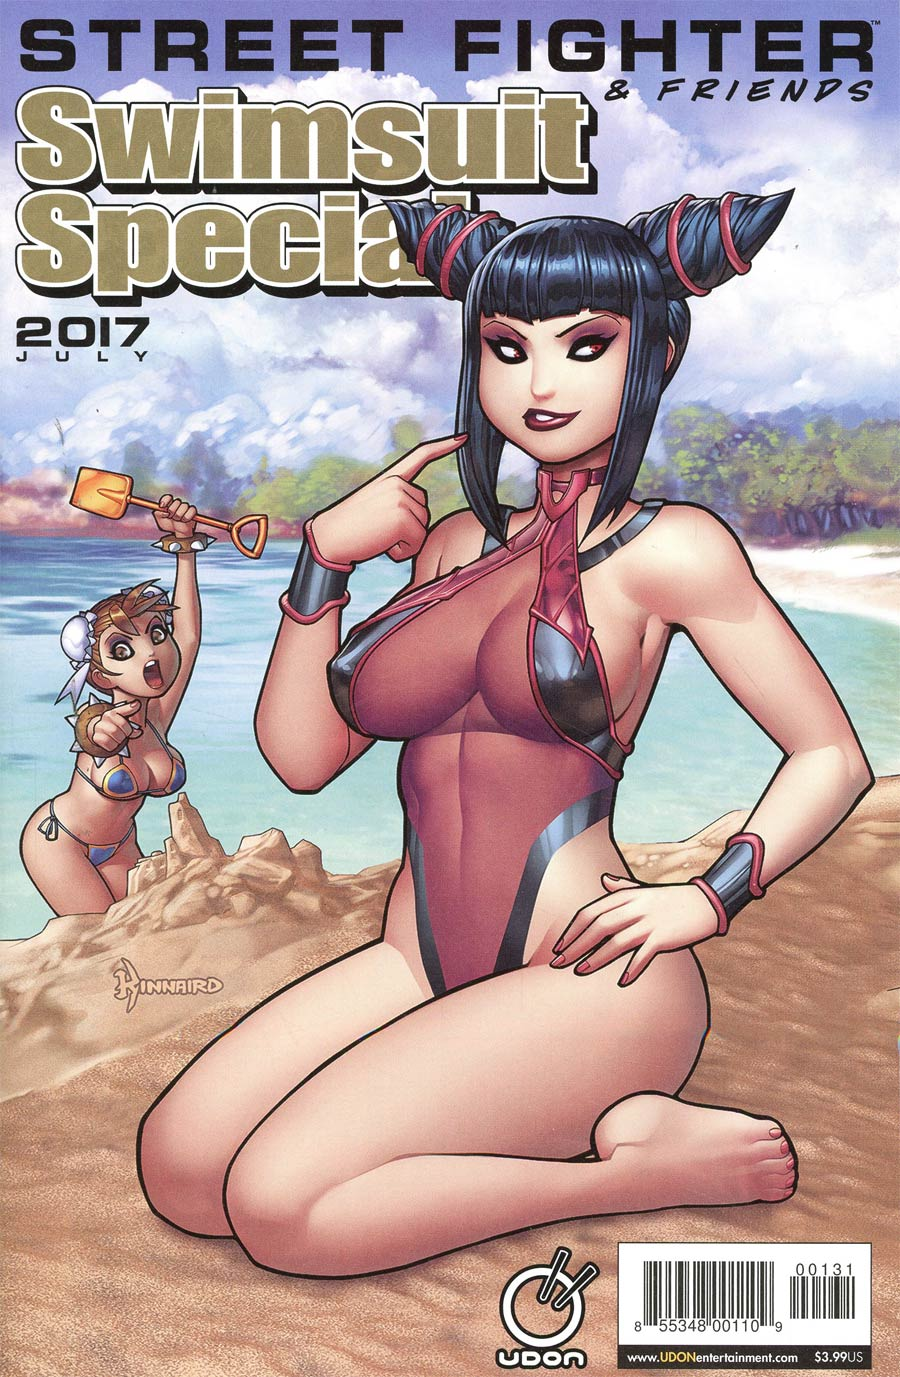 Street Fighter & Friends Swimsuit Special 2017 Cover C Variant Ryan Kinnaird Cover